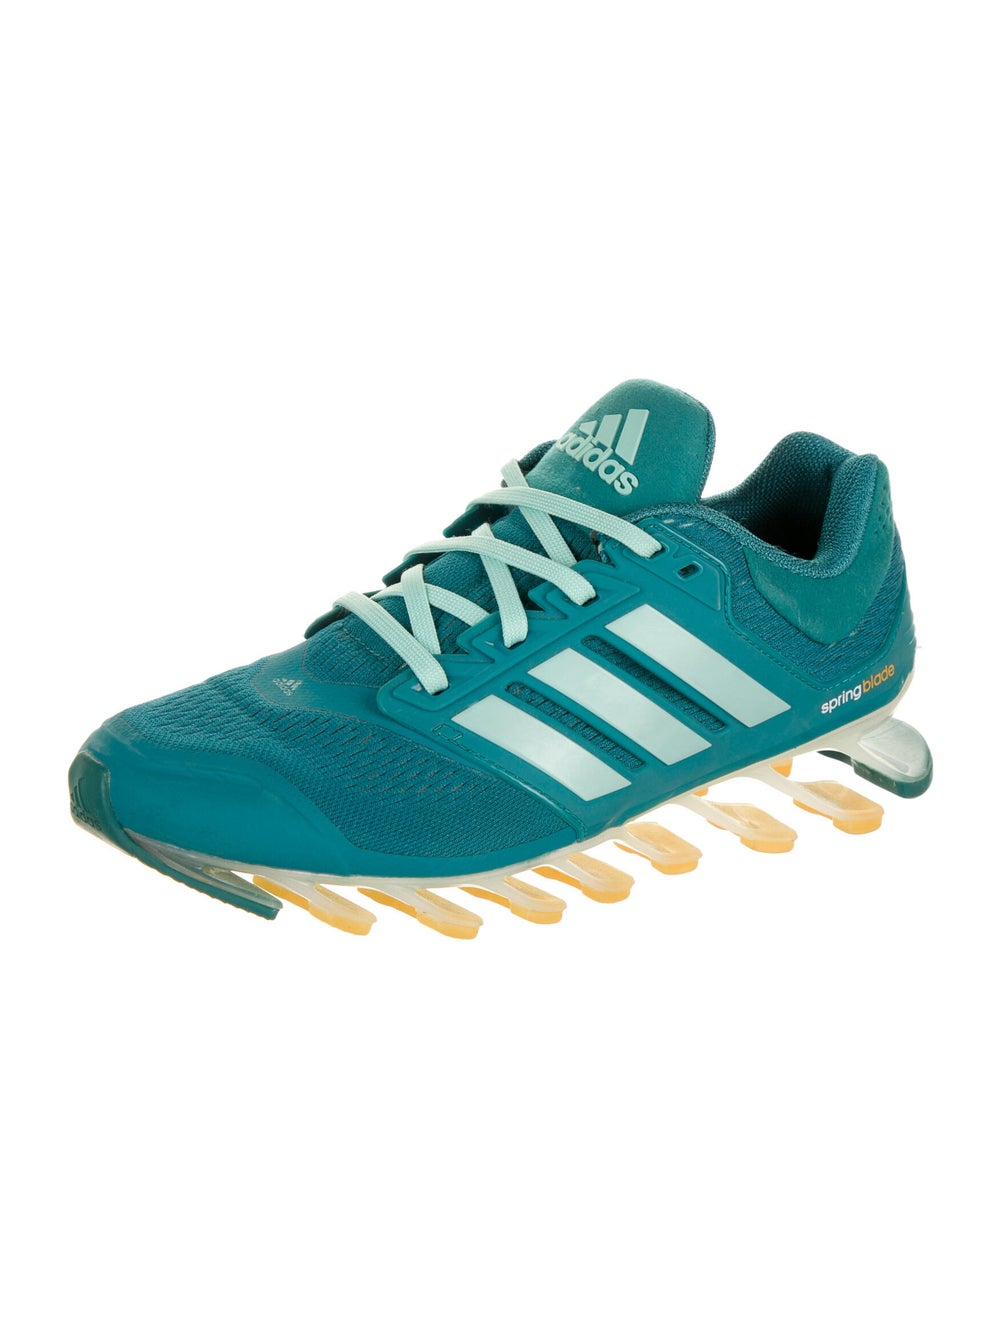 Adidas Springblade Drive Athletic Sneakers Green - image 2